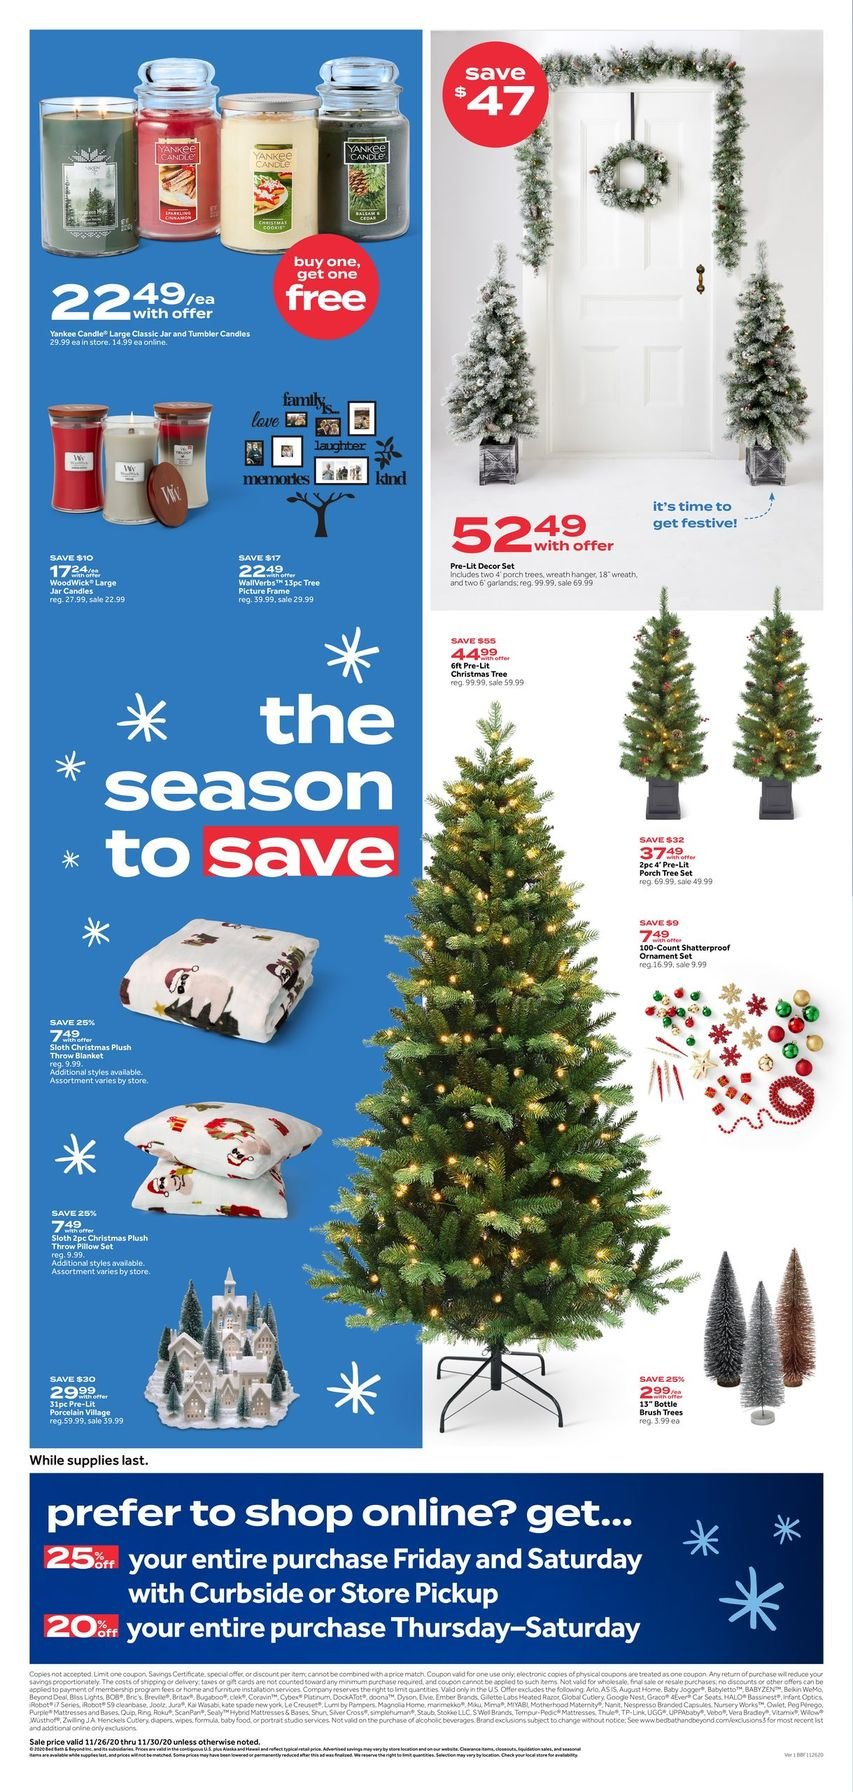 Bed Bath & Beyond Black Friday 2020 Page 8